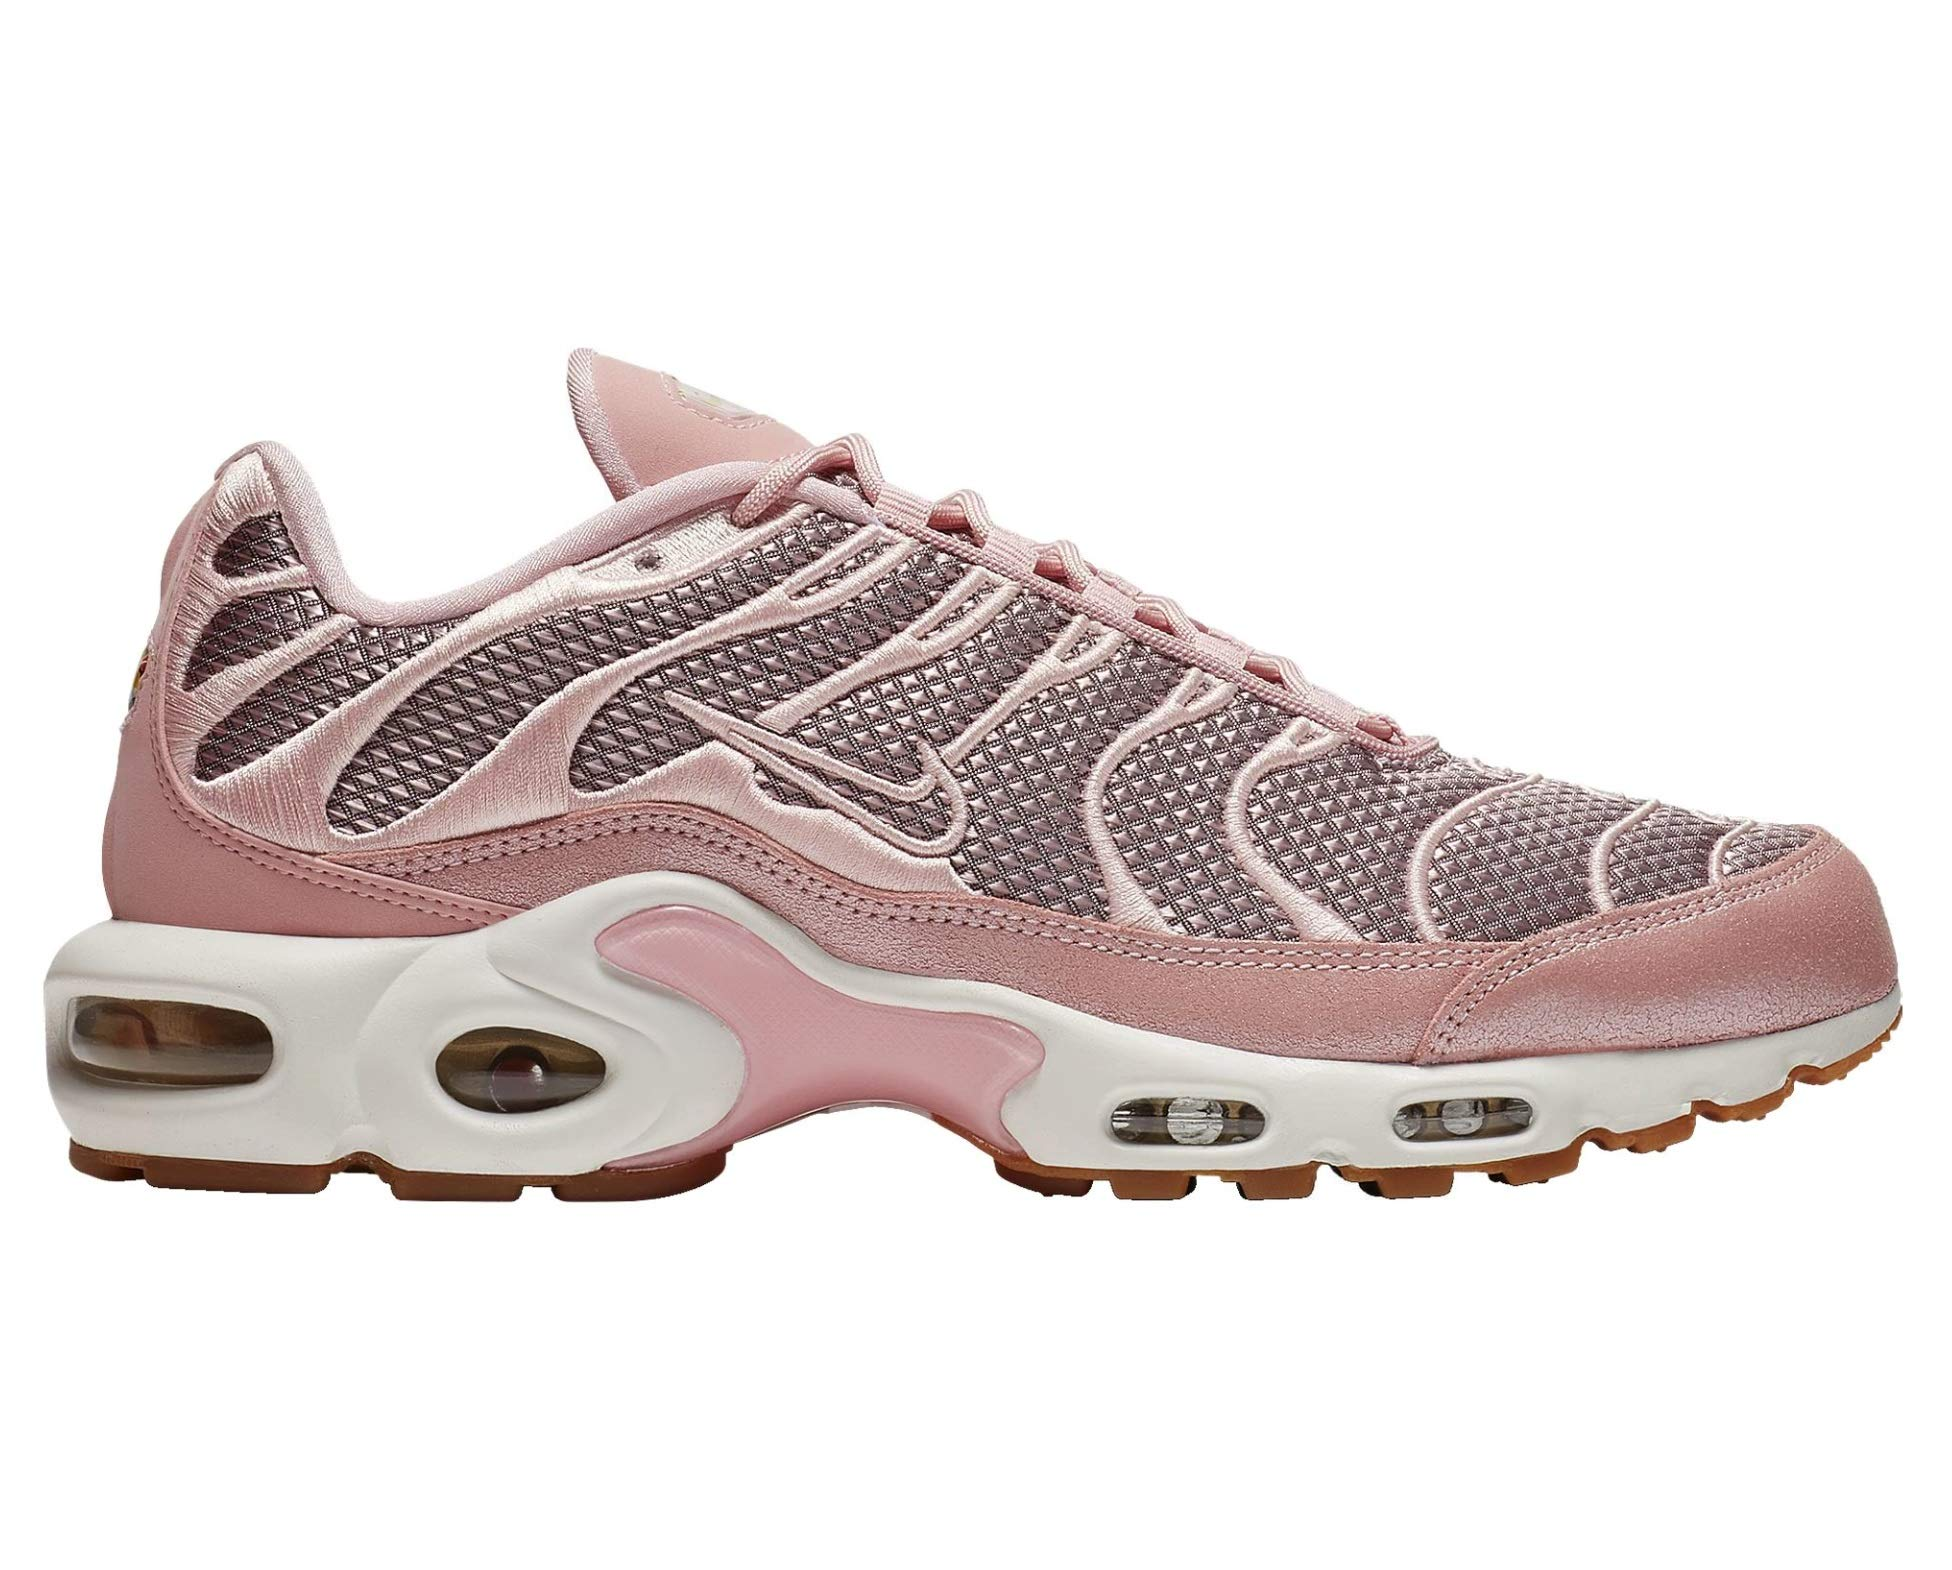 separation shoes eddaa 4fff2 Nike Air Max Plus - Women's Sheen/Metallic Gold/Summit White Nylon Running  Shoes